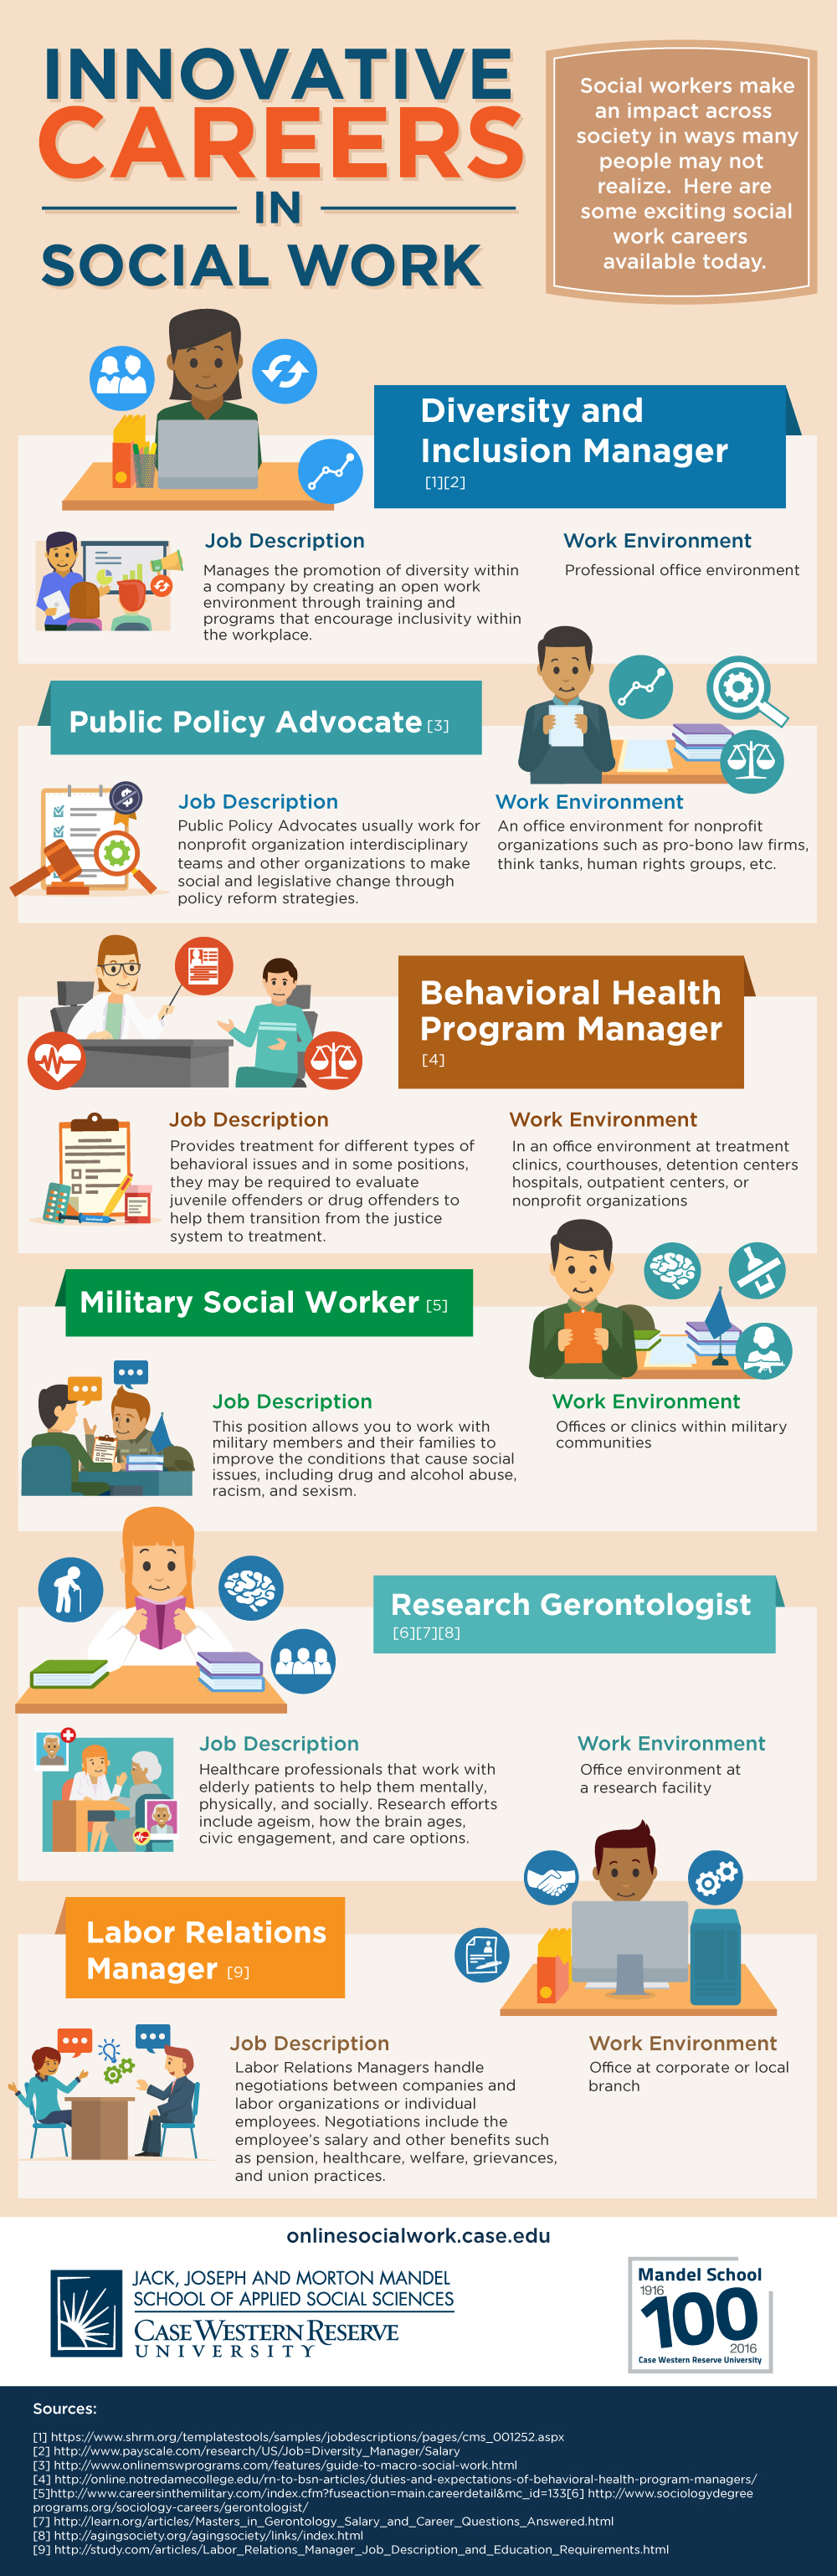 a career in social work Updated march 2nd, 2018 - research and compare online master of social work (msw) graduate degrees with our comprehensive guide to the nation's top schools work towards your career.